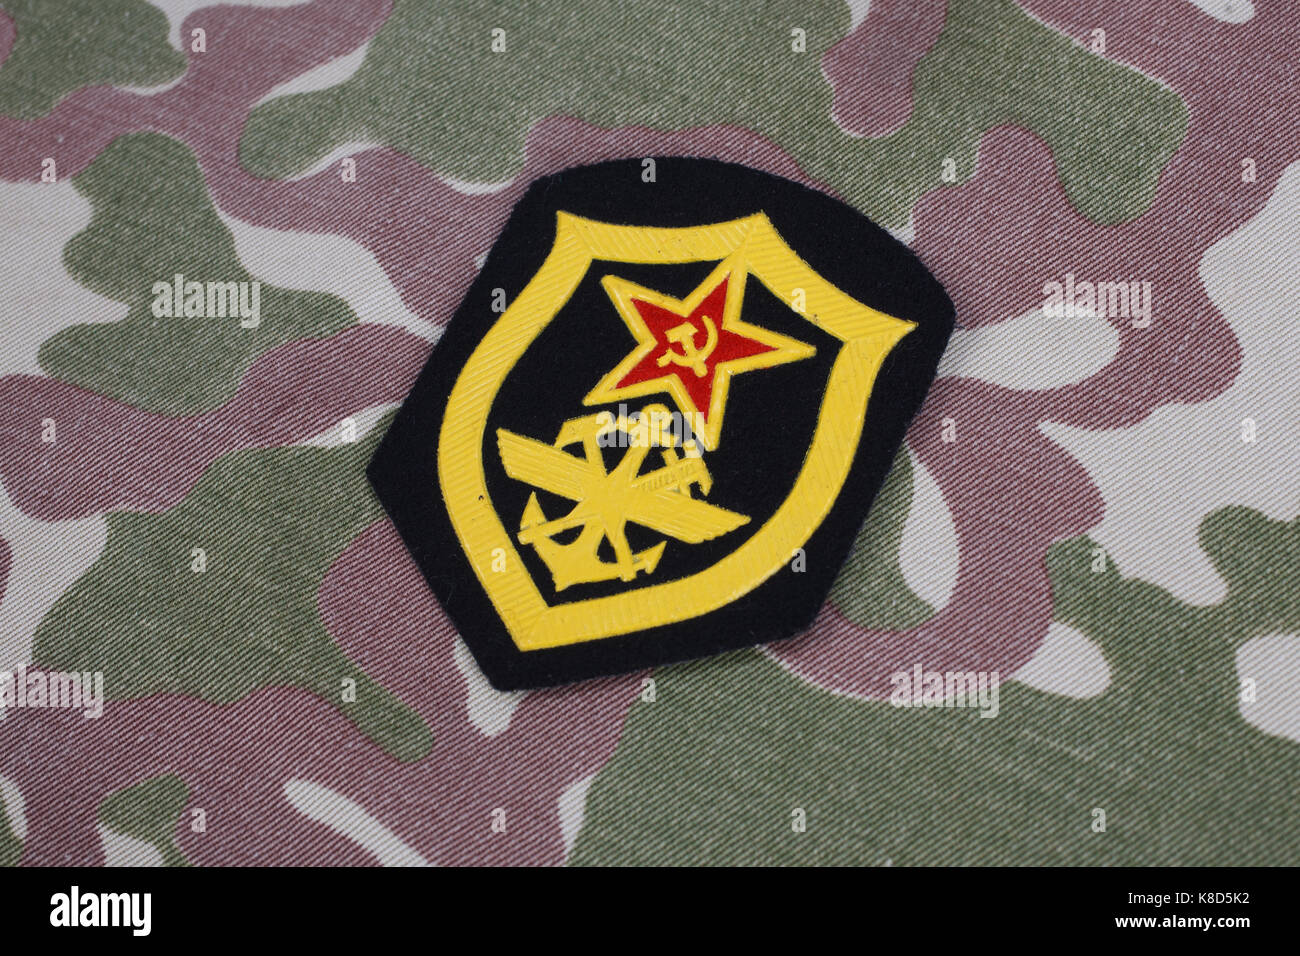 Soviet Army Military engineering shoulder patch on camouflage uniform - Stock Image